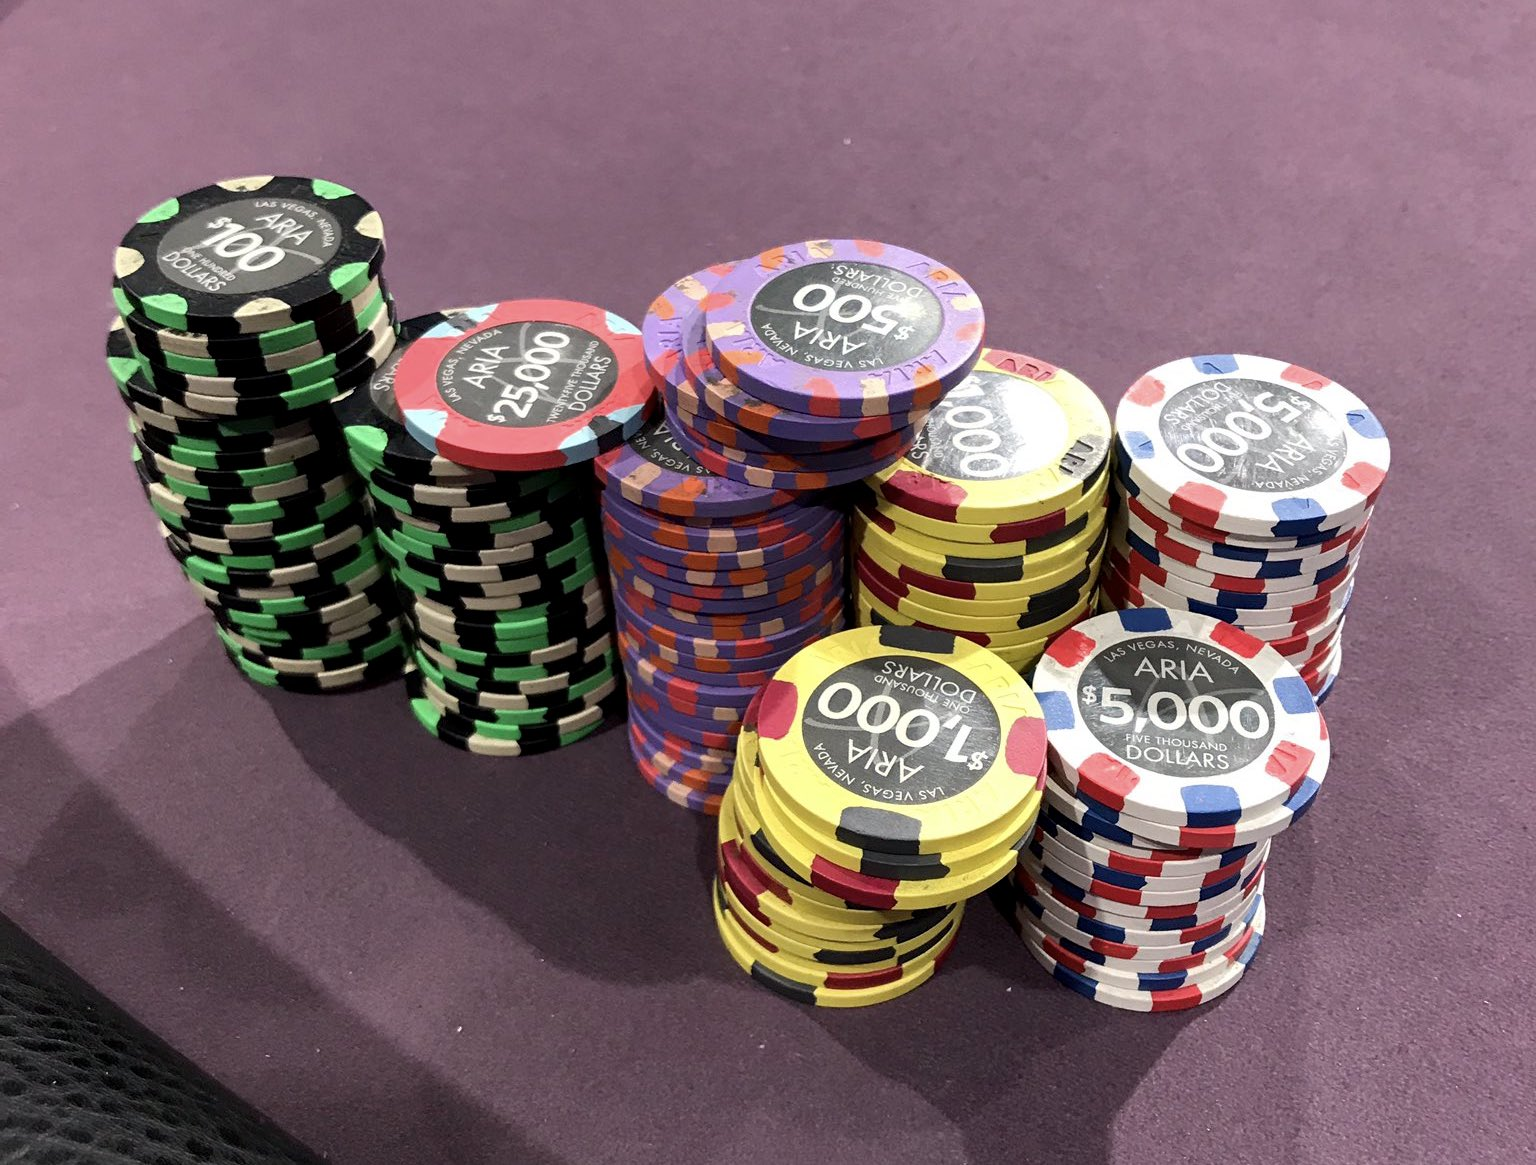 Negreanu's starting stack for Poker After Dark